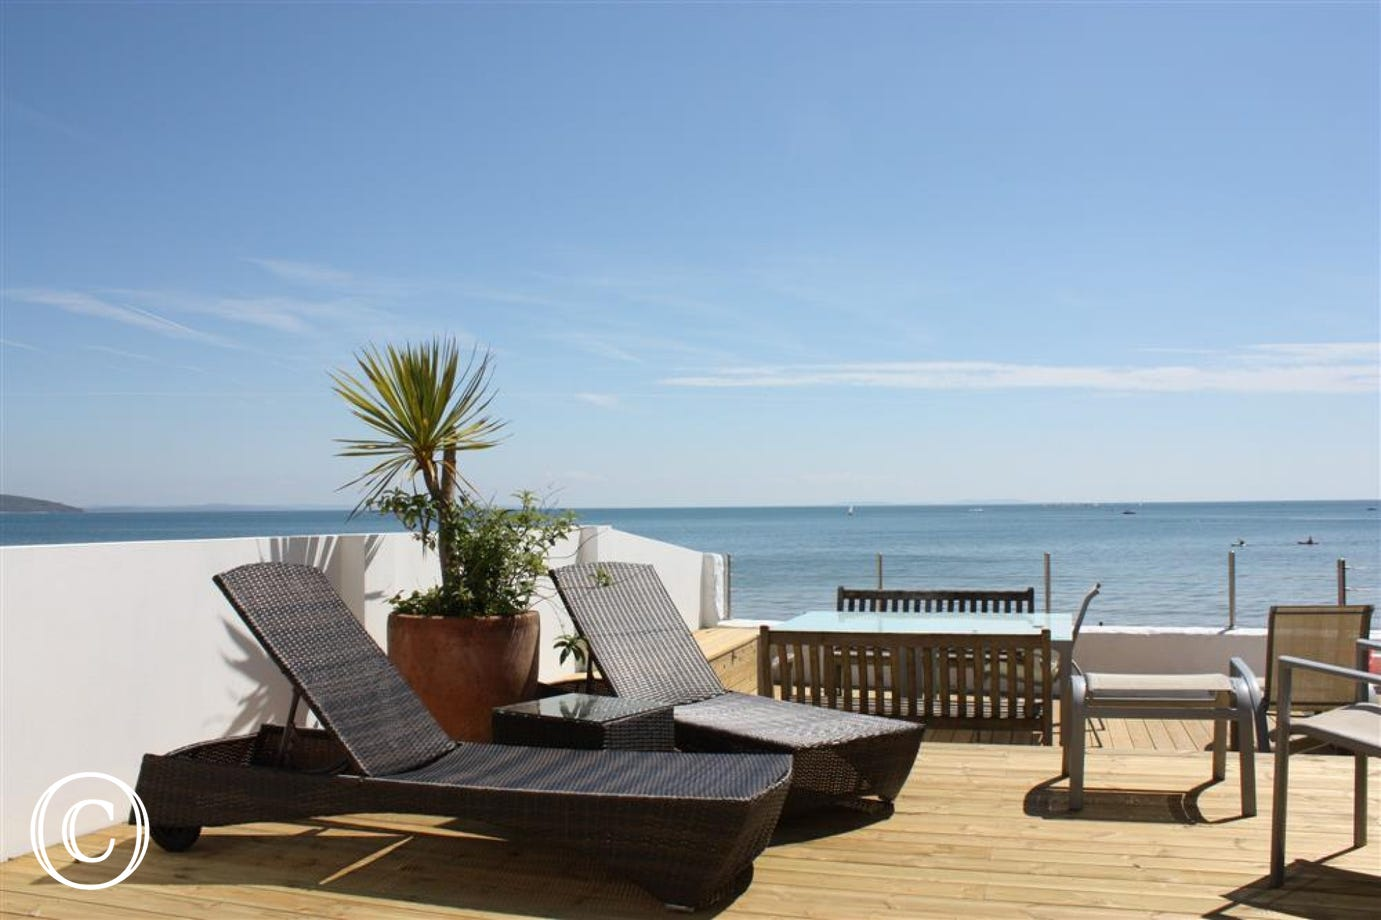 An idyllic setting in which to sit, relax and look out onto seafront.